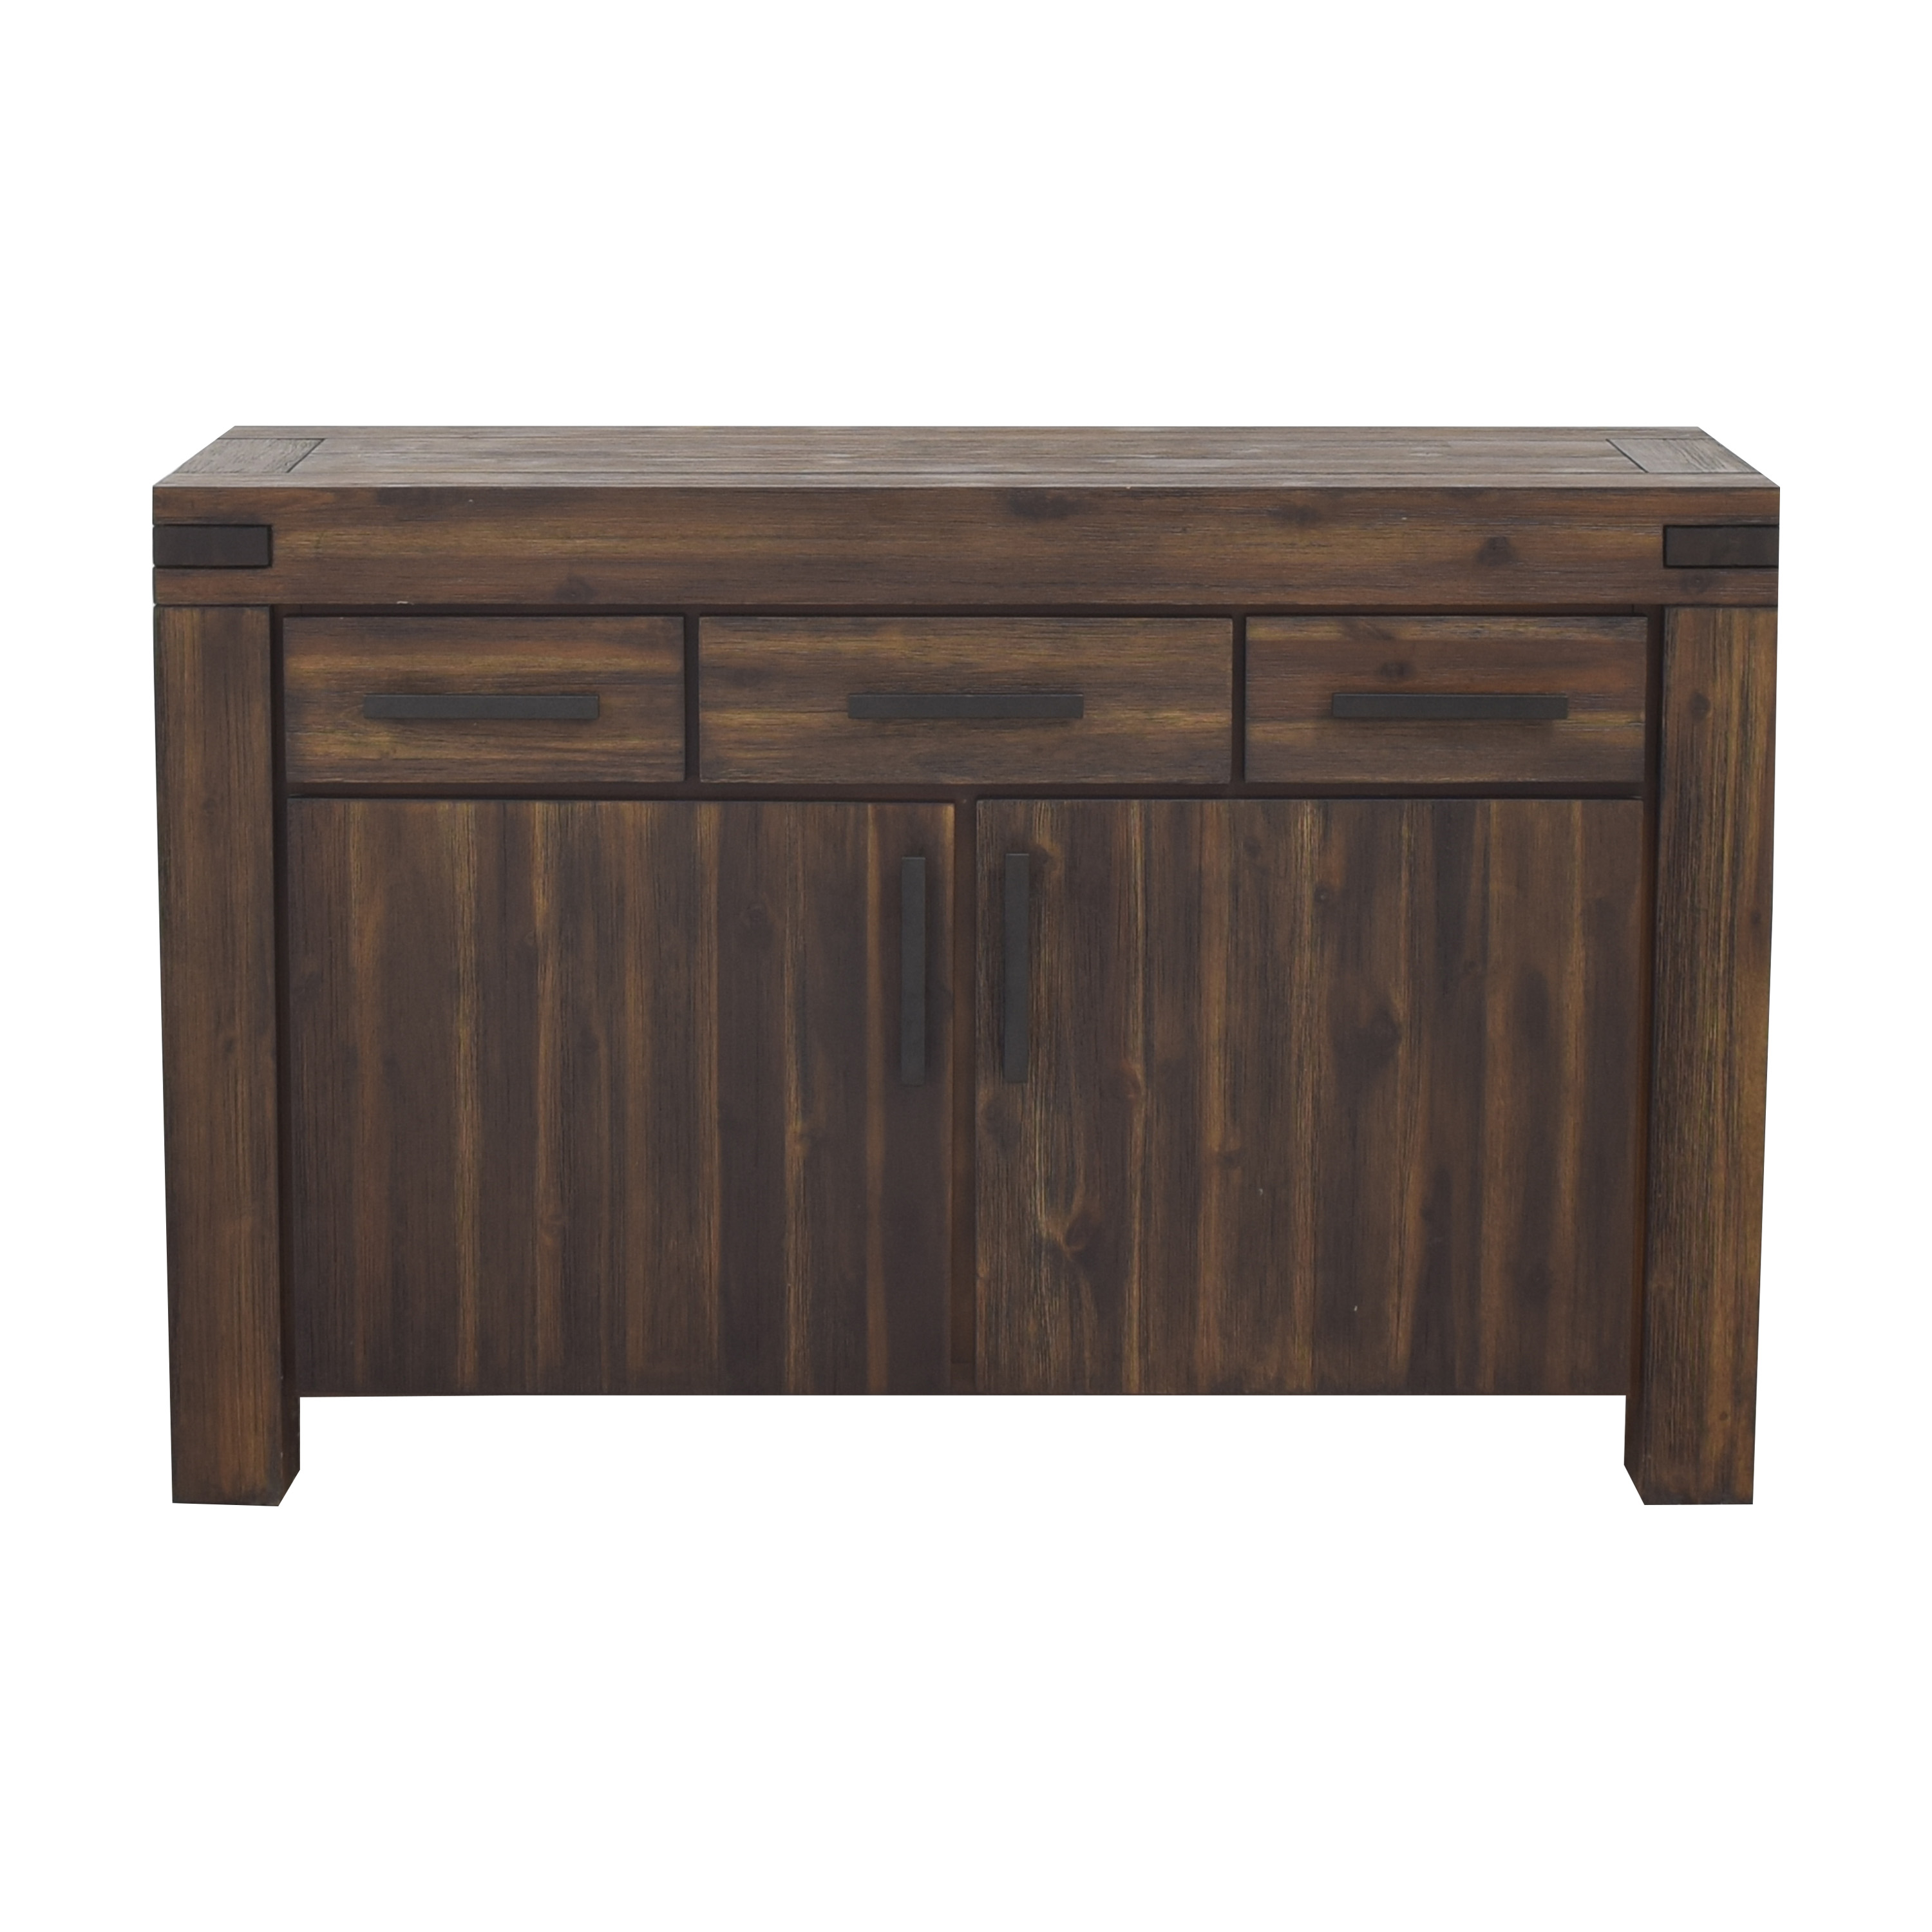 Macy's Macy's Avondale Credenza with Cabinet pa